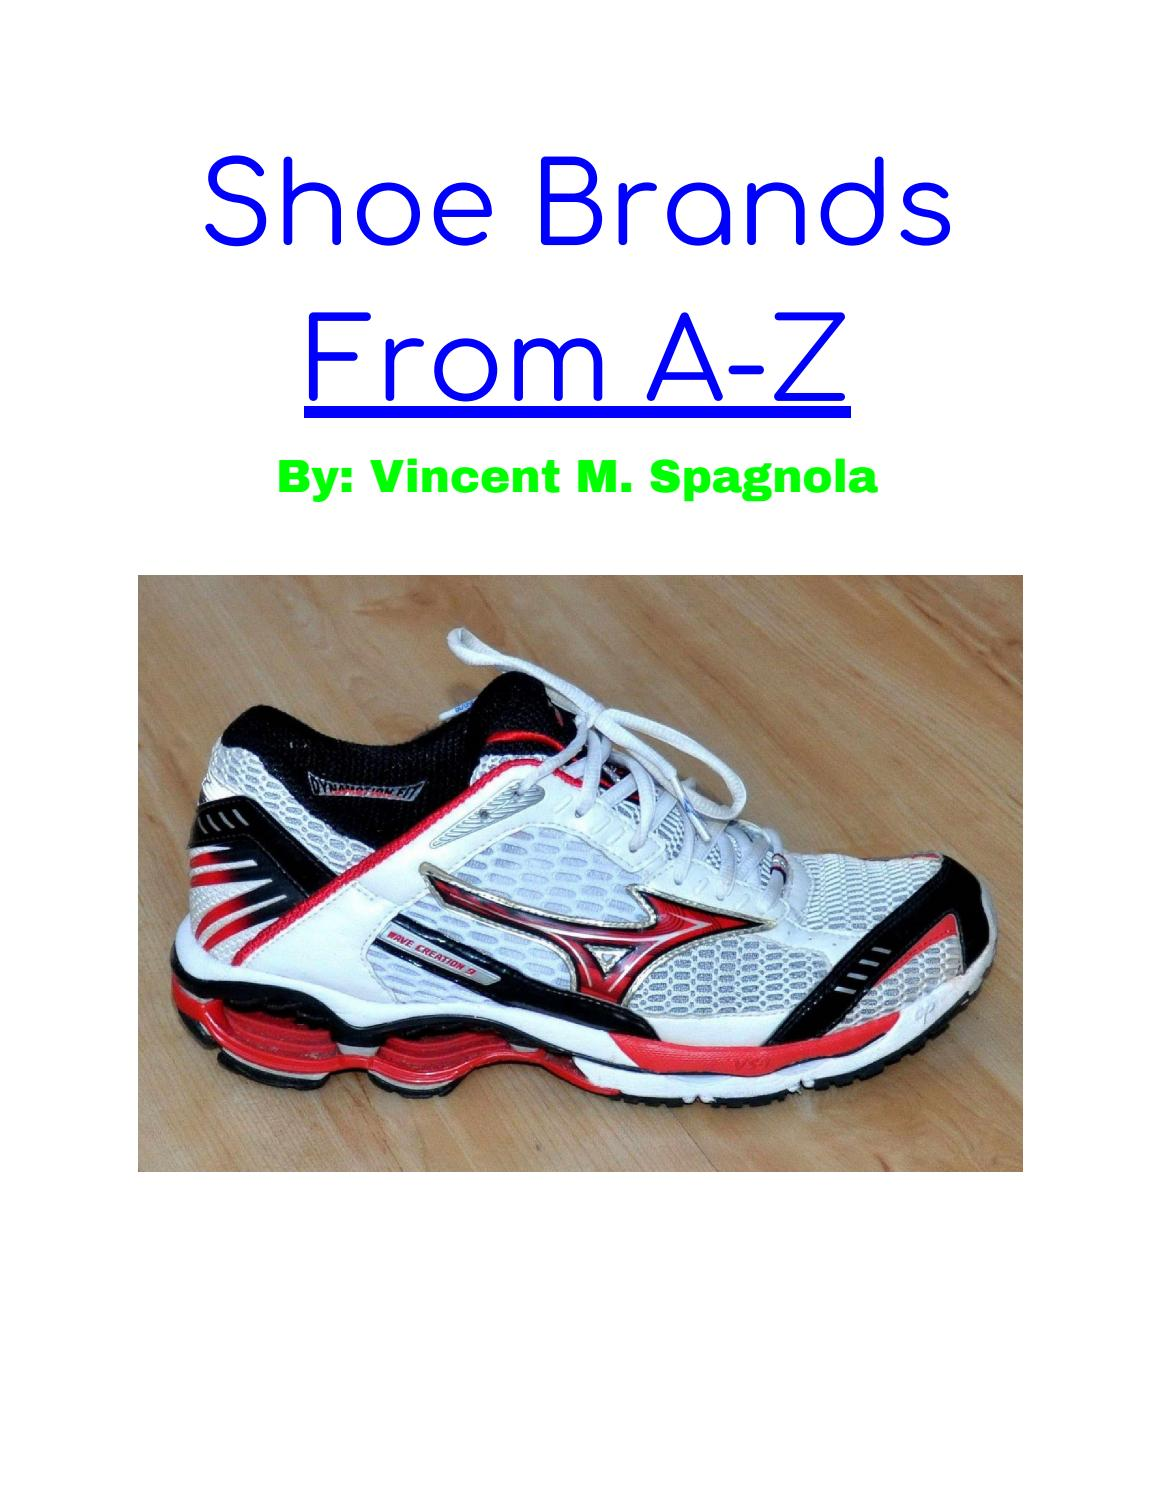 Shoe Brands From A-Z by Vincent